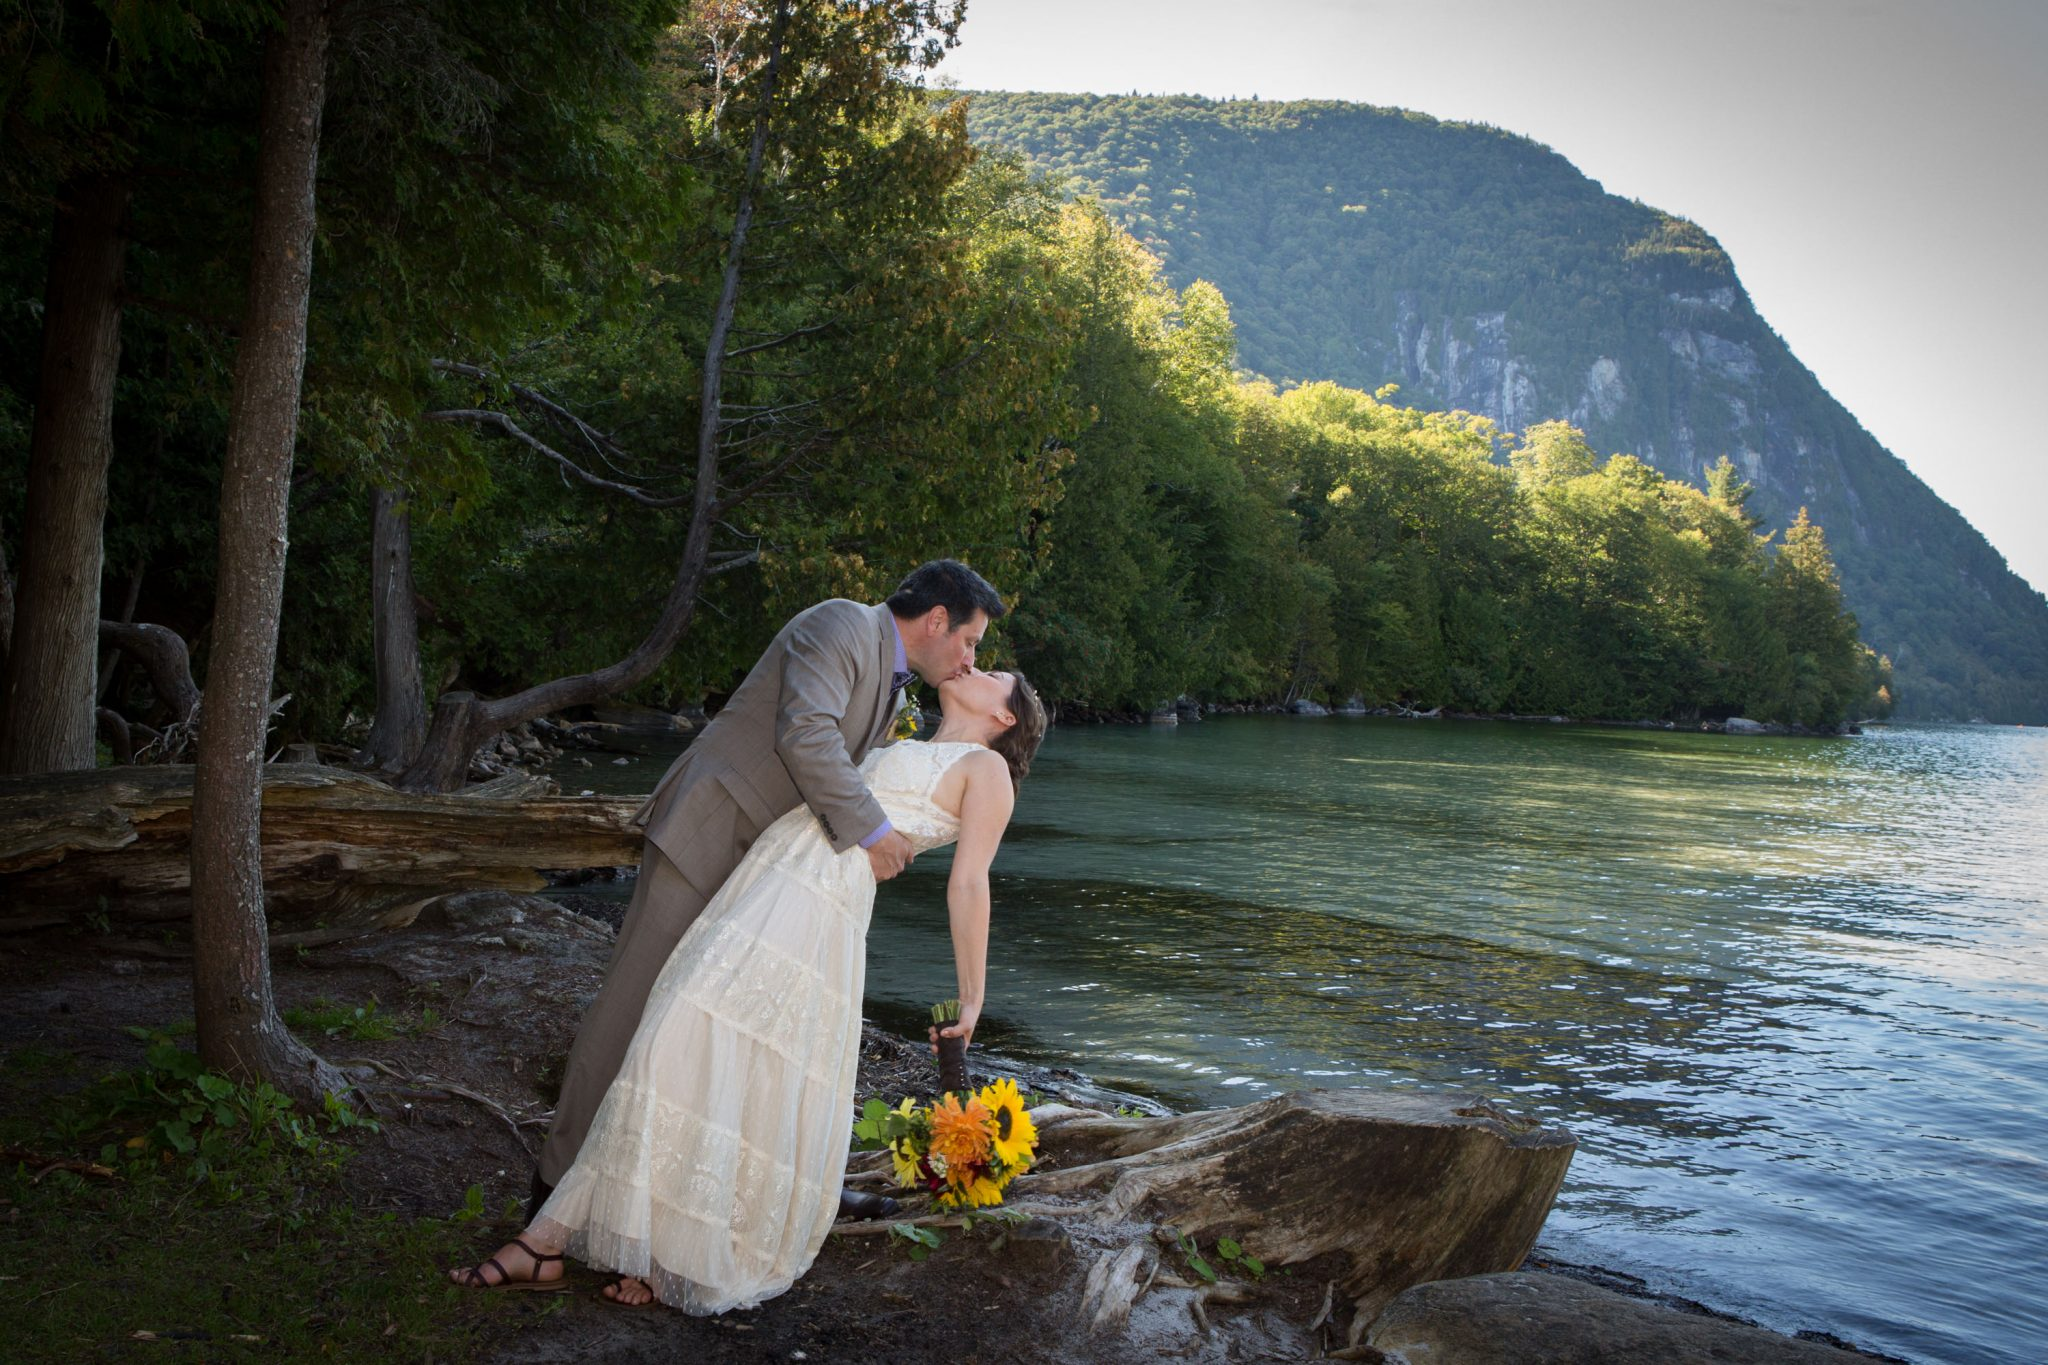 candid wedding portrait kiss at Notch House on Willoughby Lake, Westmore, Vermont